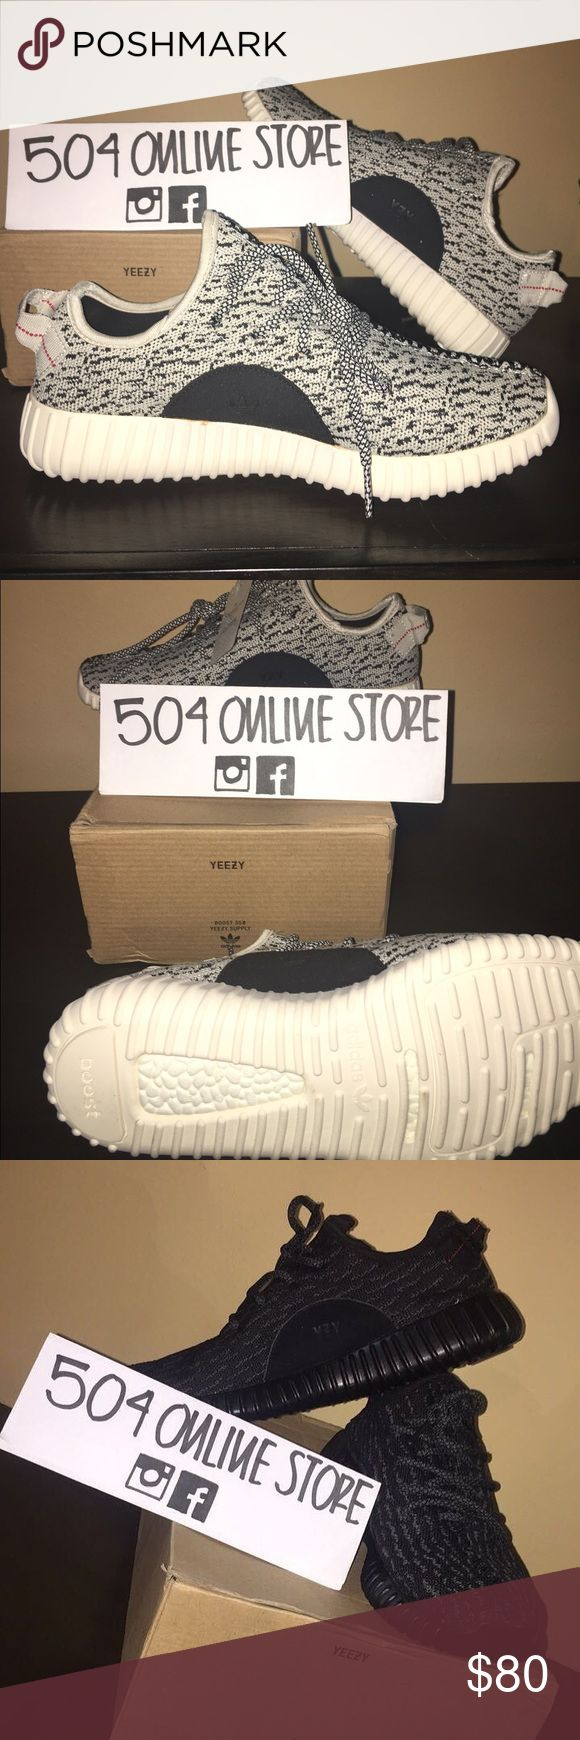 3d6698ea8a61f yeezy boost 350 turtle dove restore adidas yeezy for sale usa